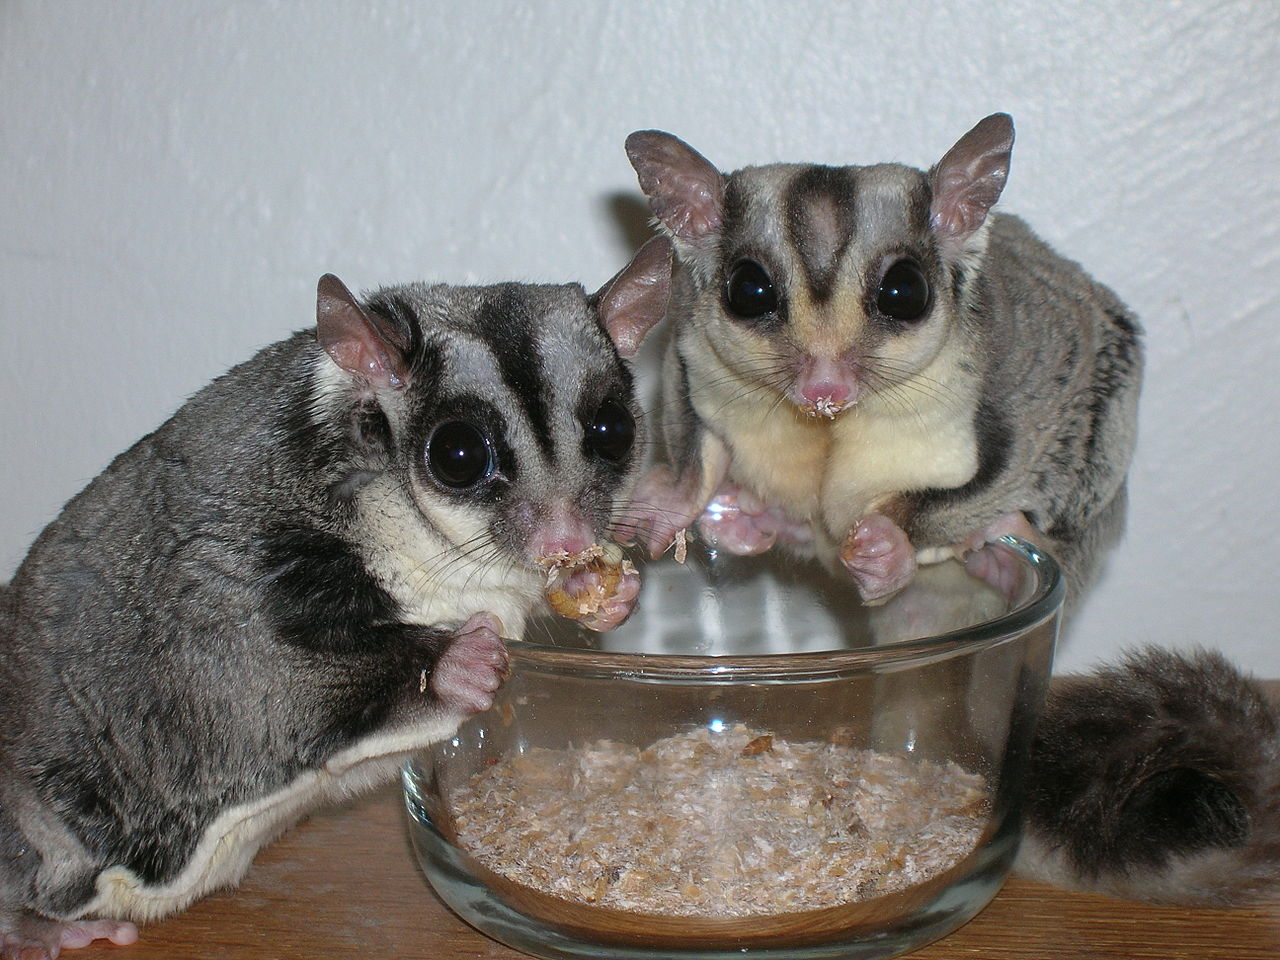 Male and Female Sugar Gliders eating mealworms from a bowl